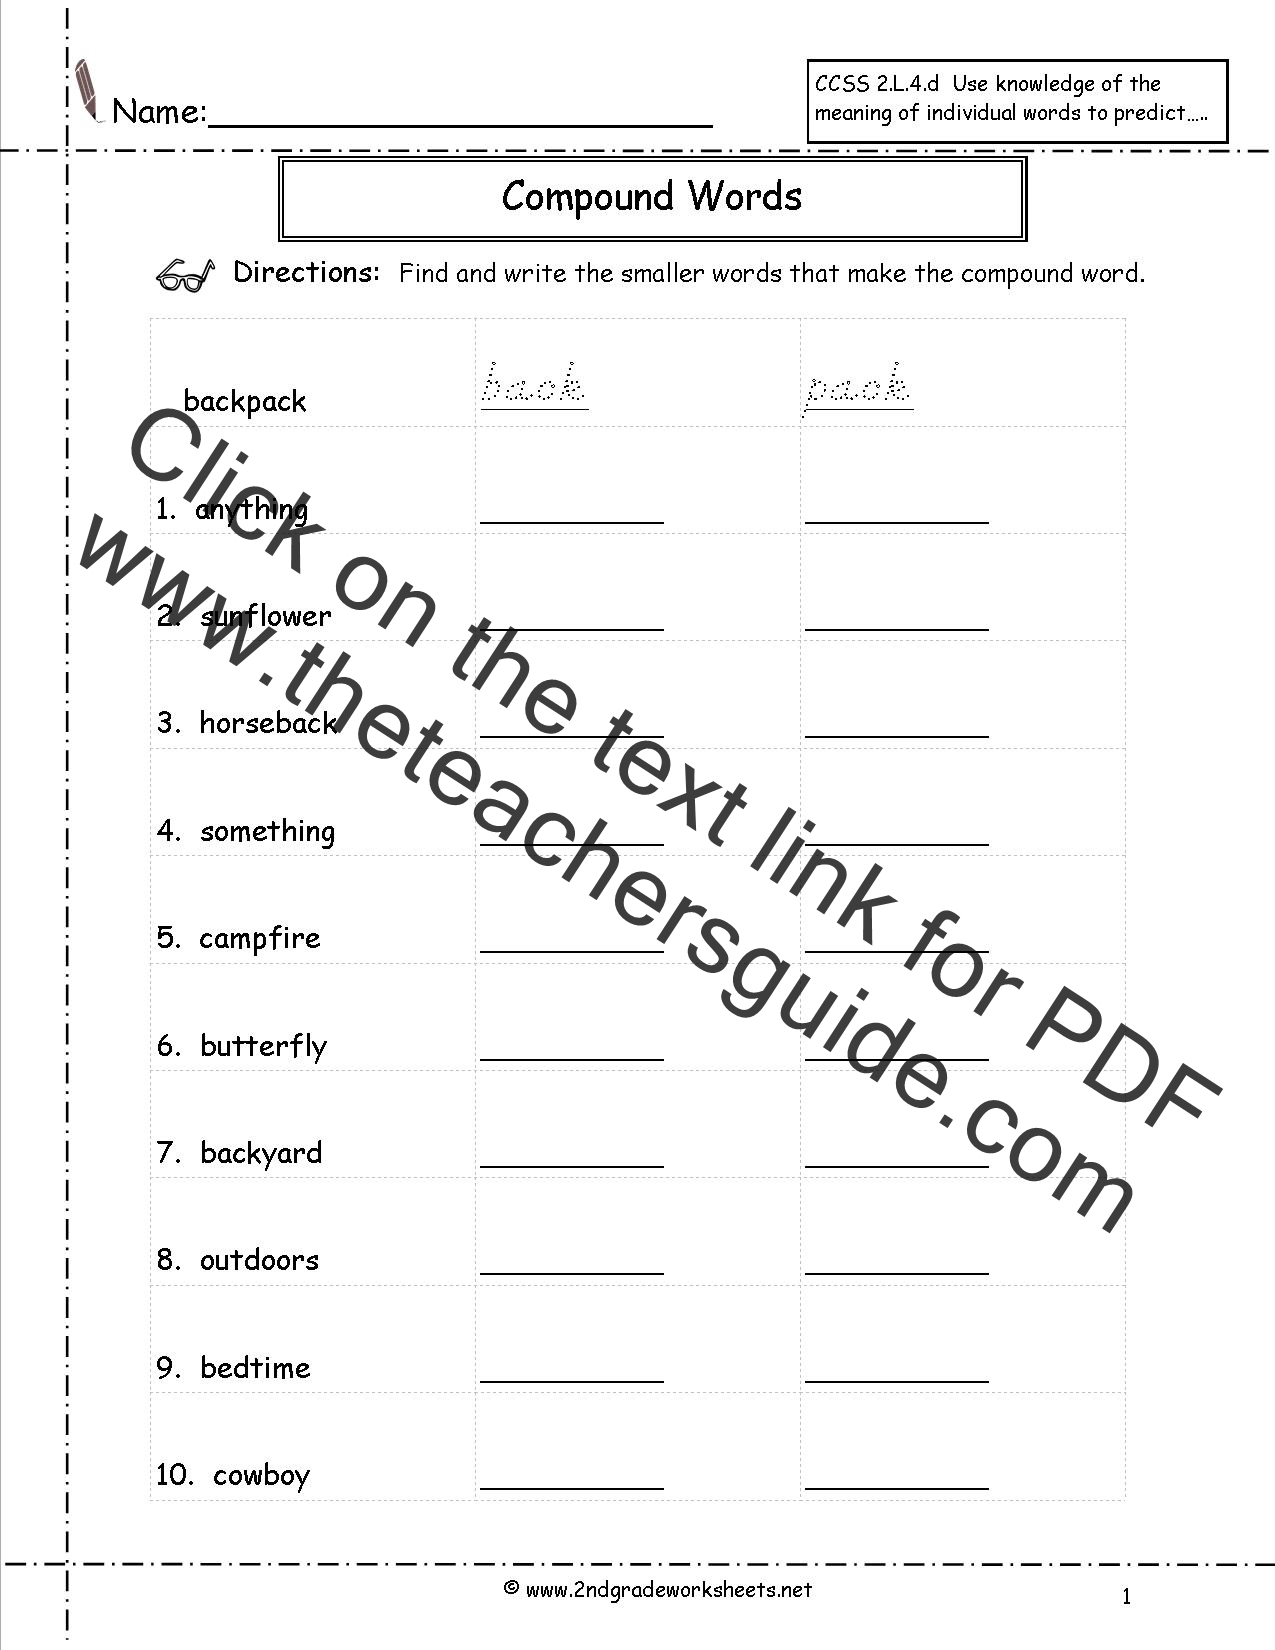 Compound Words Worksheets